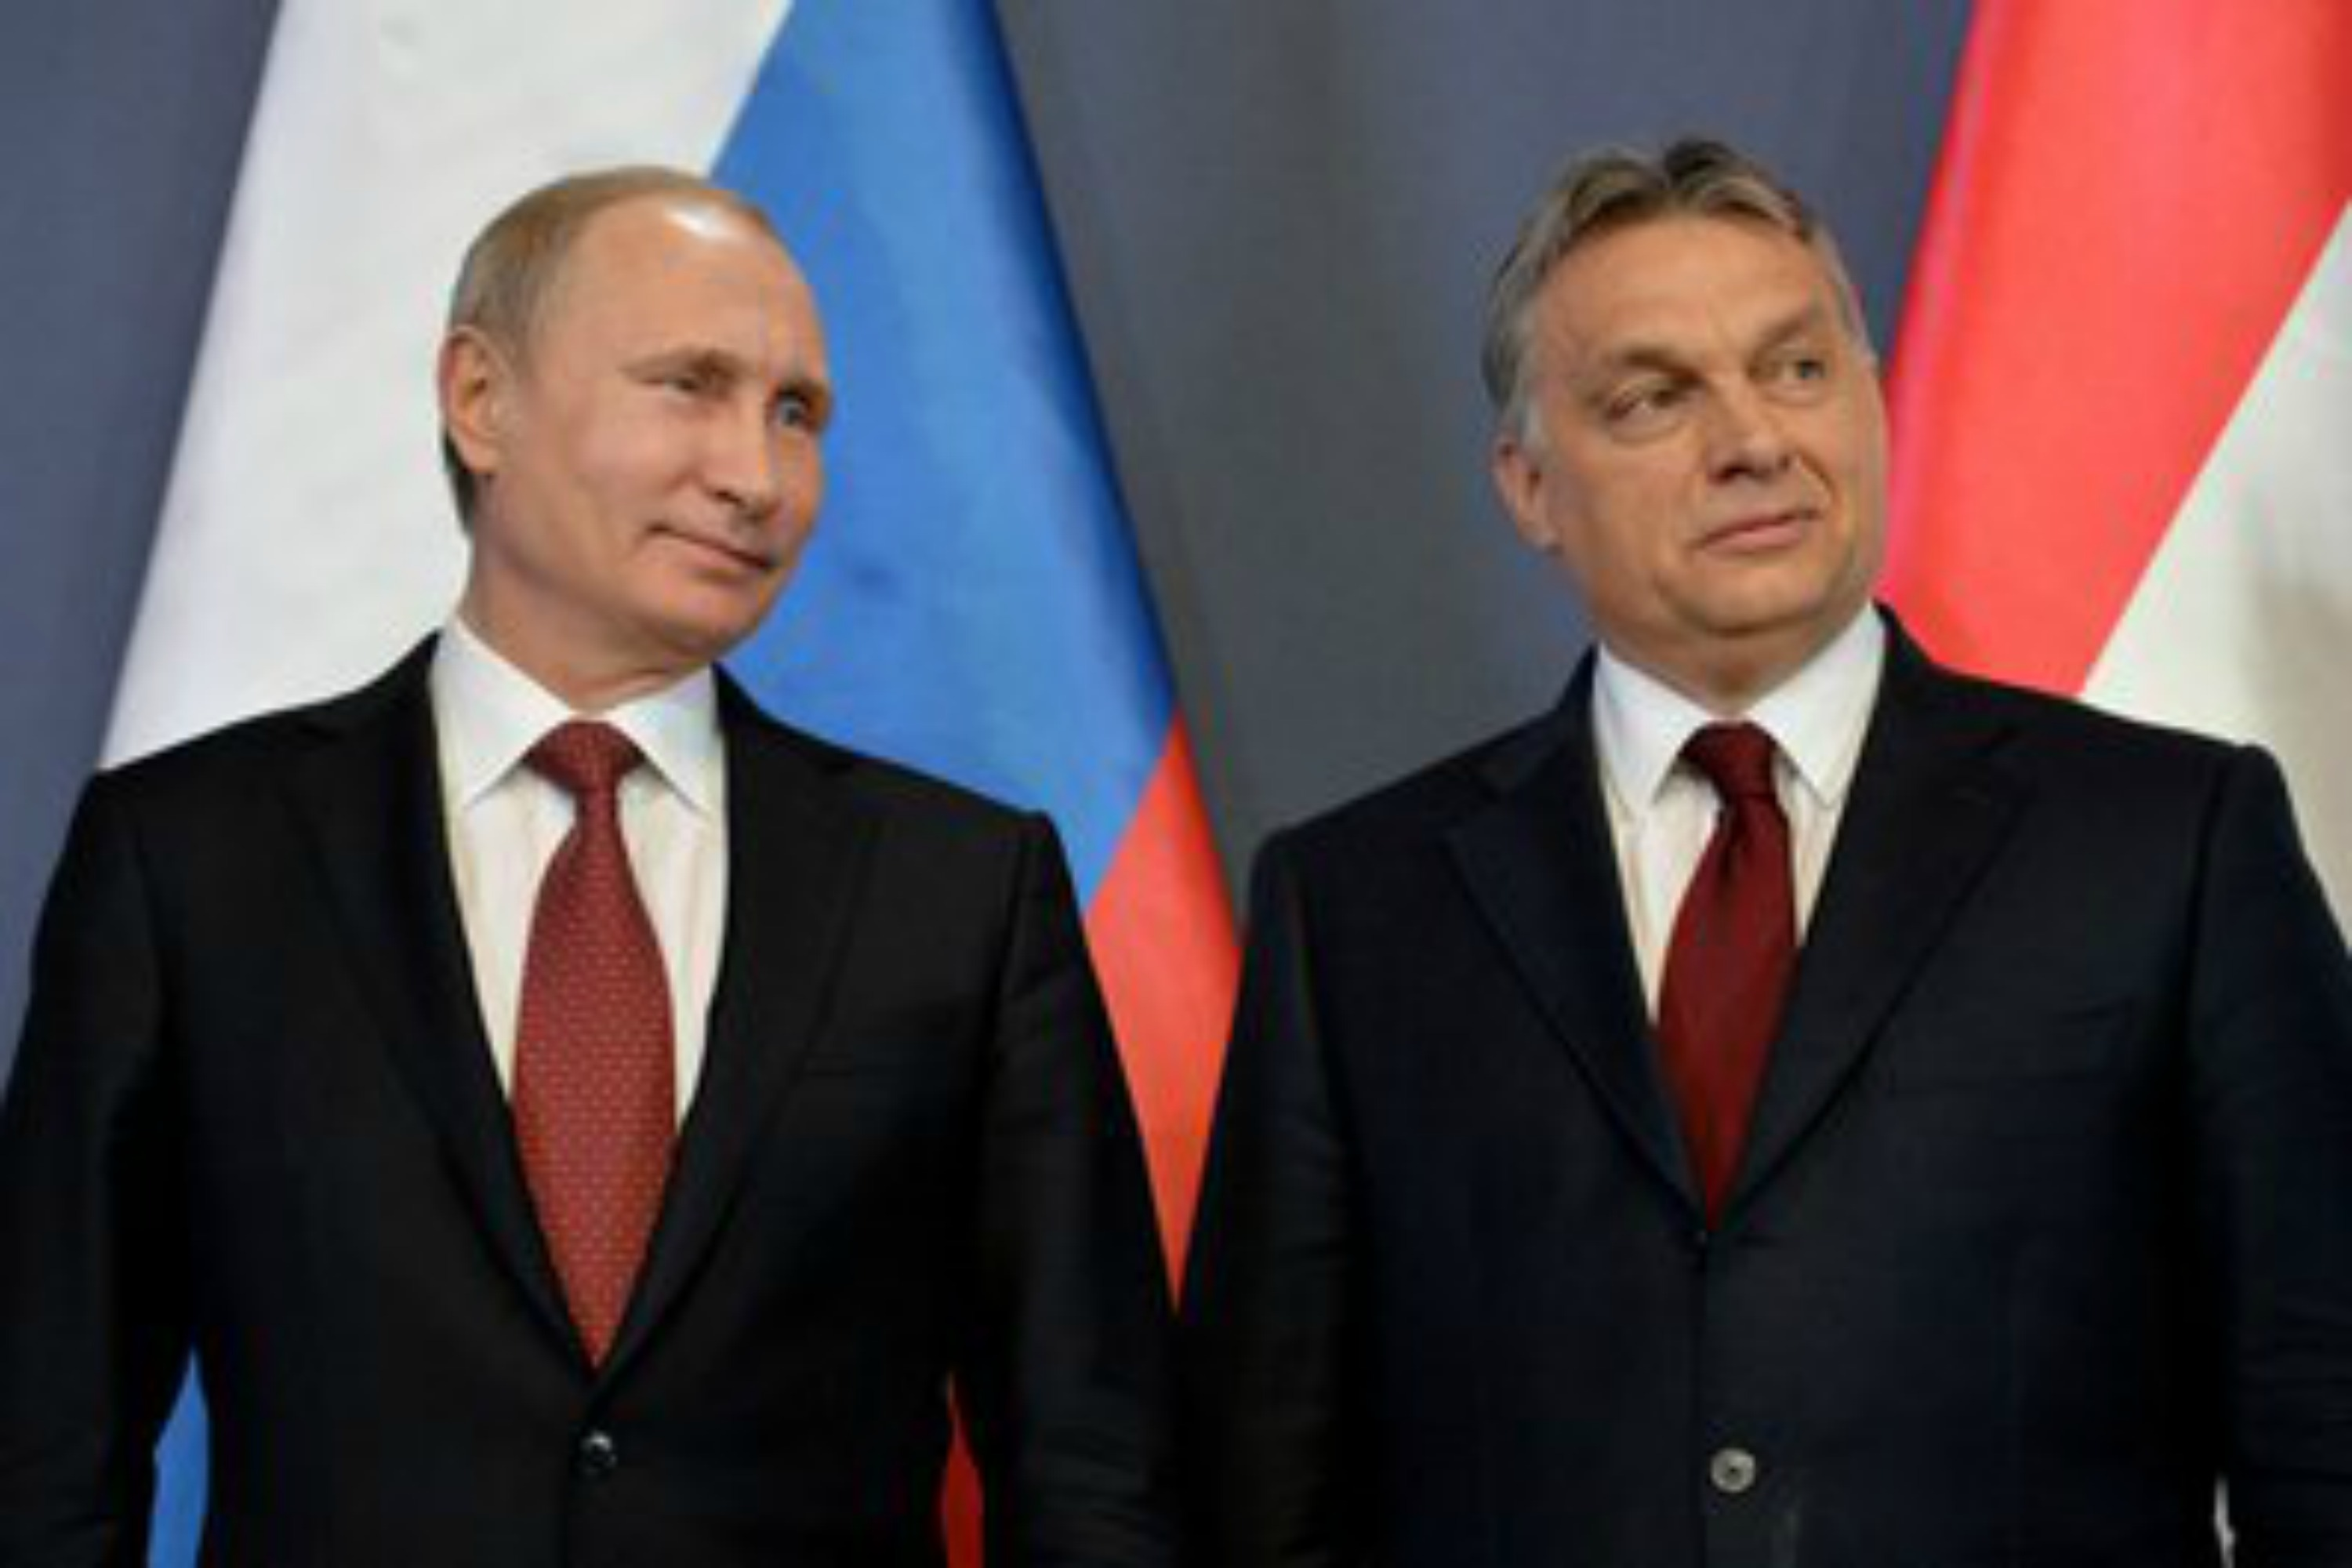 Energy: What does Hungary want?